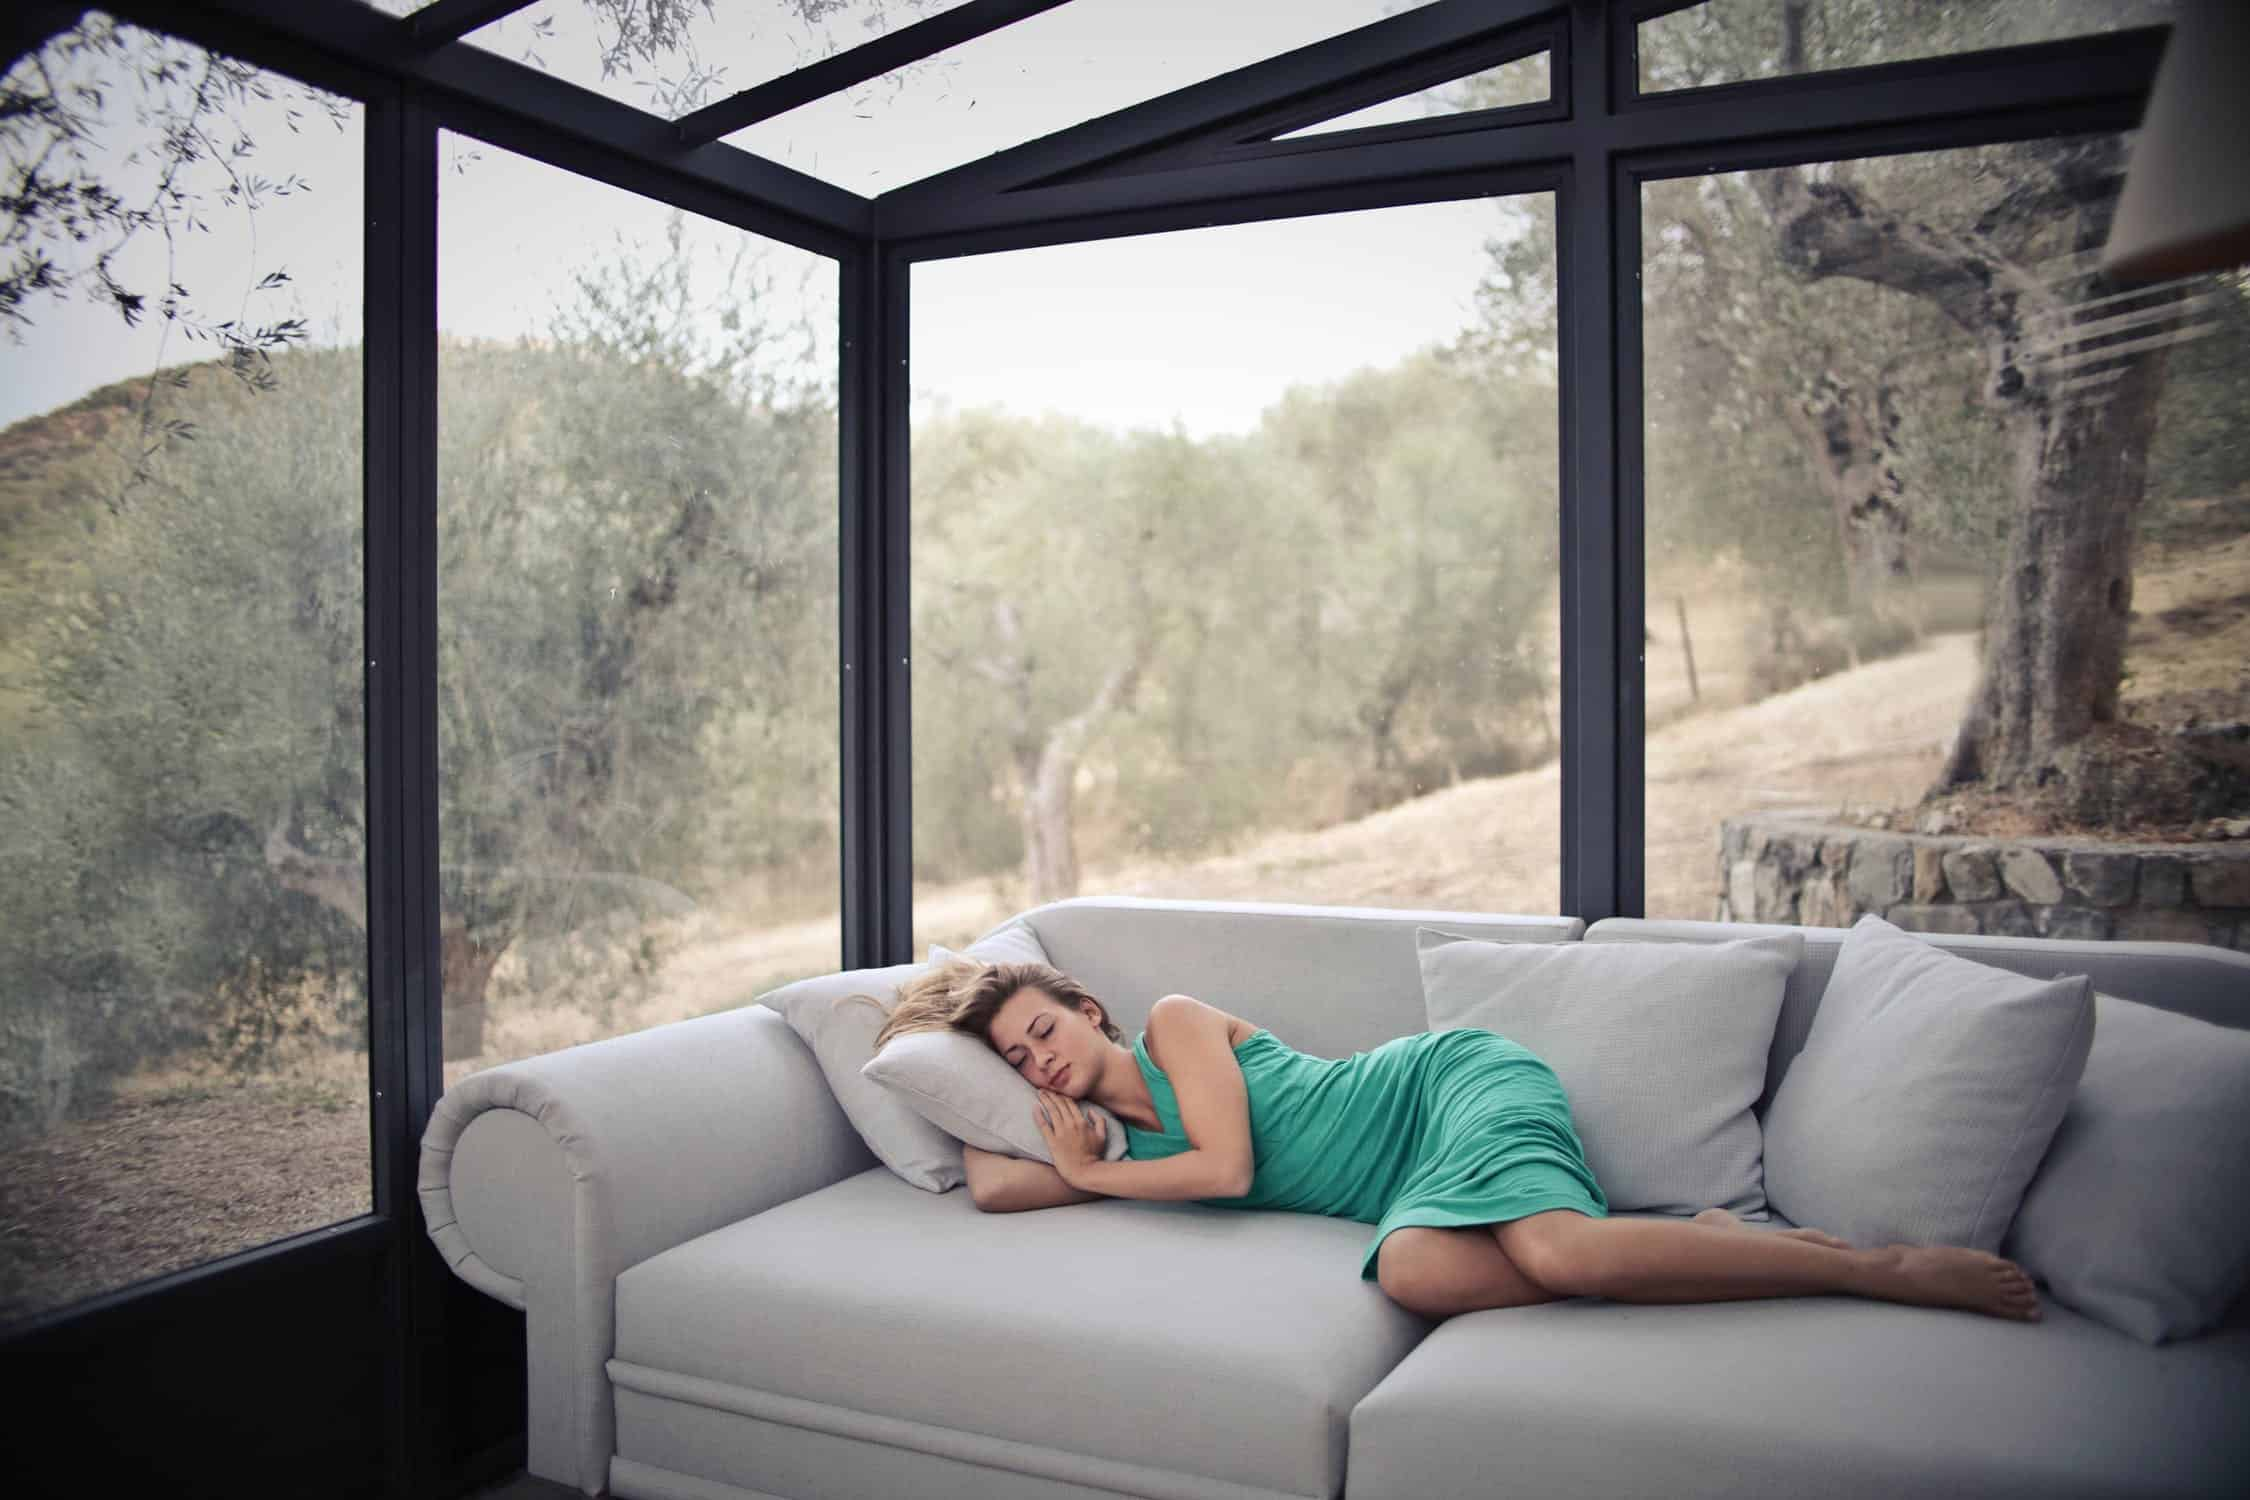 How To Design a Home That Supports Healthy Sleep